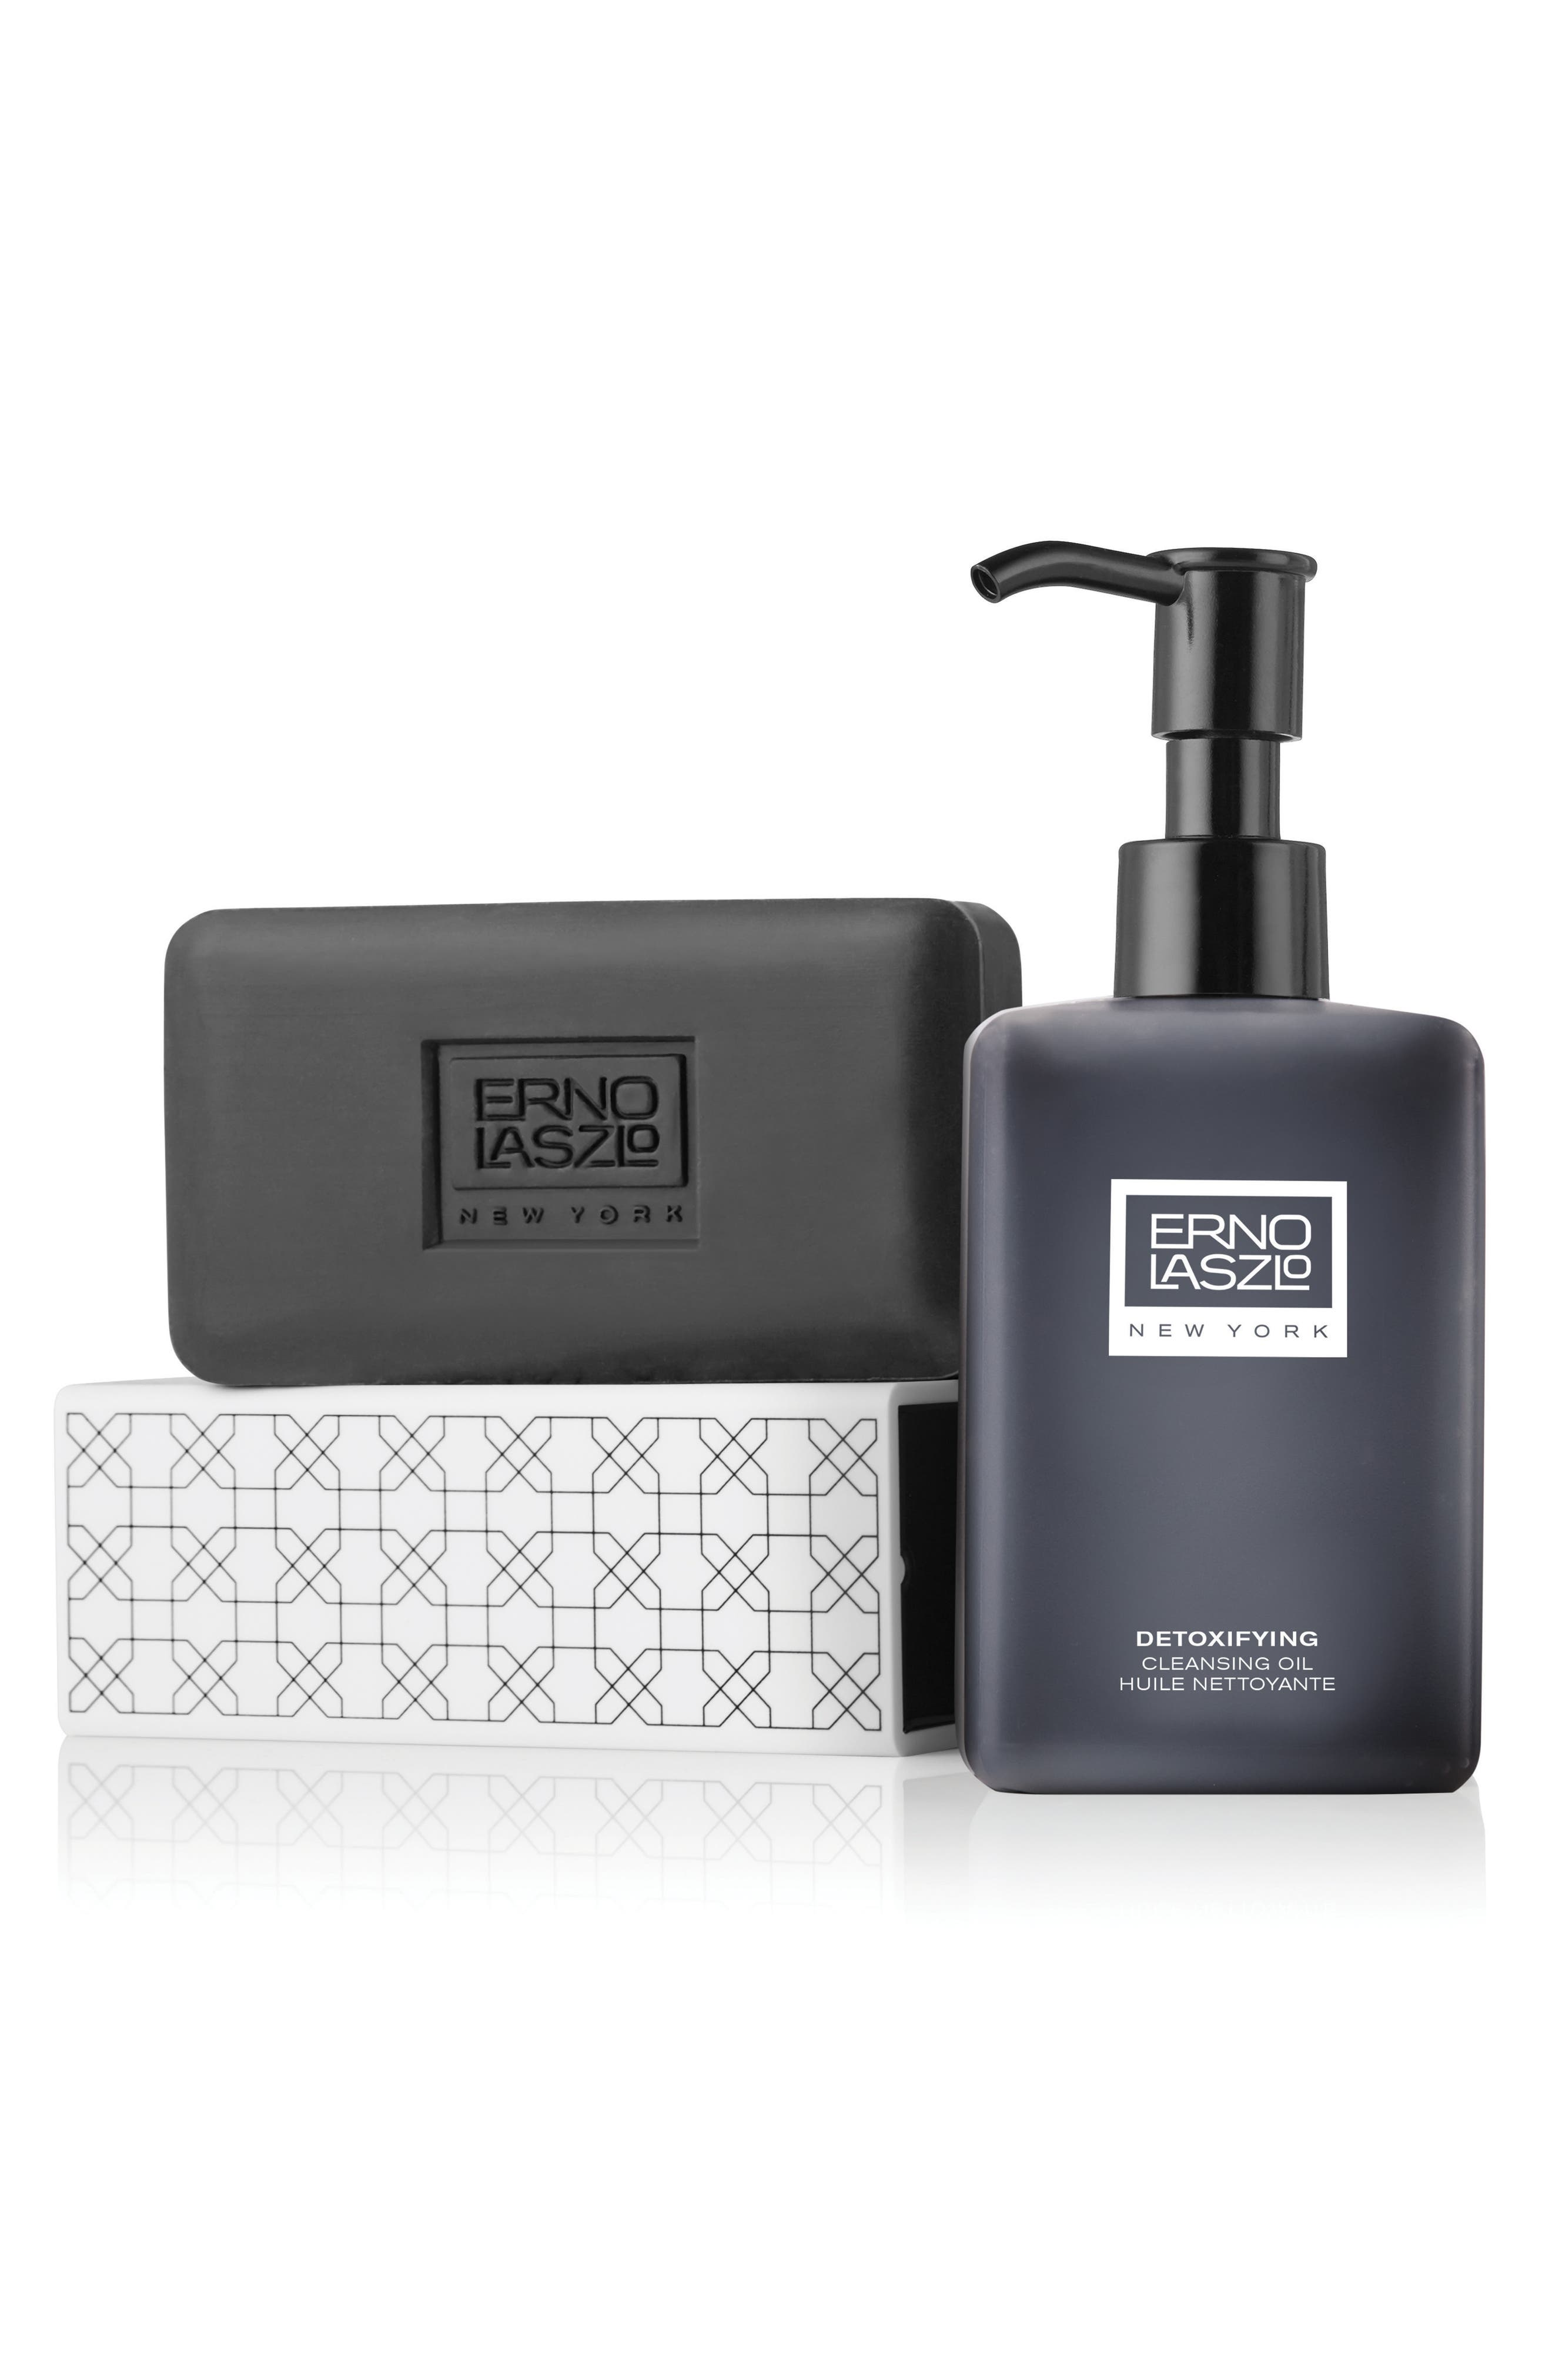 Erno Laszlo Detoxifying Double Cleanse Duo ($96 Value)